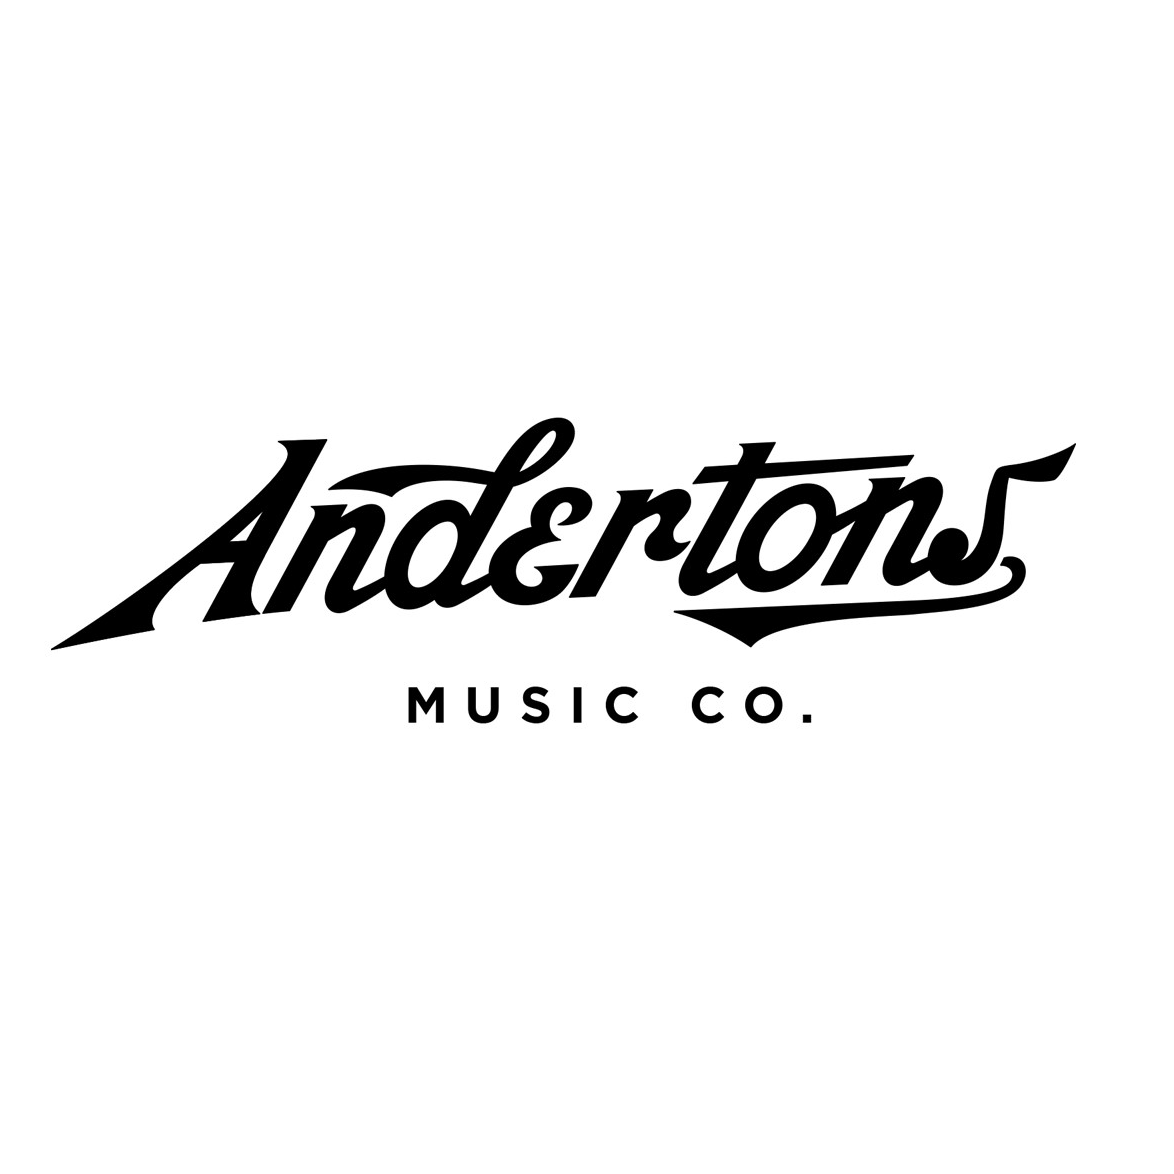 Hosted By Andertons Music Co